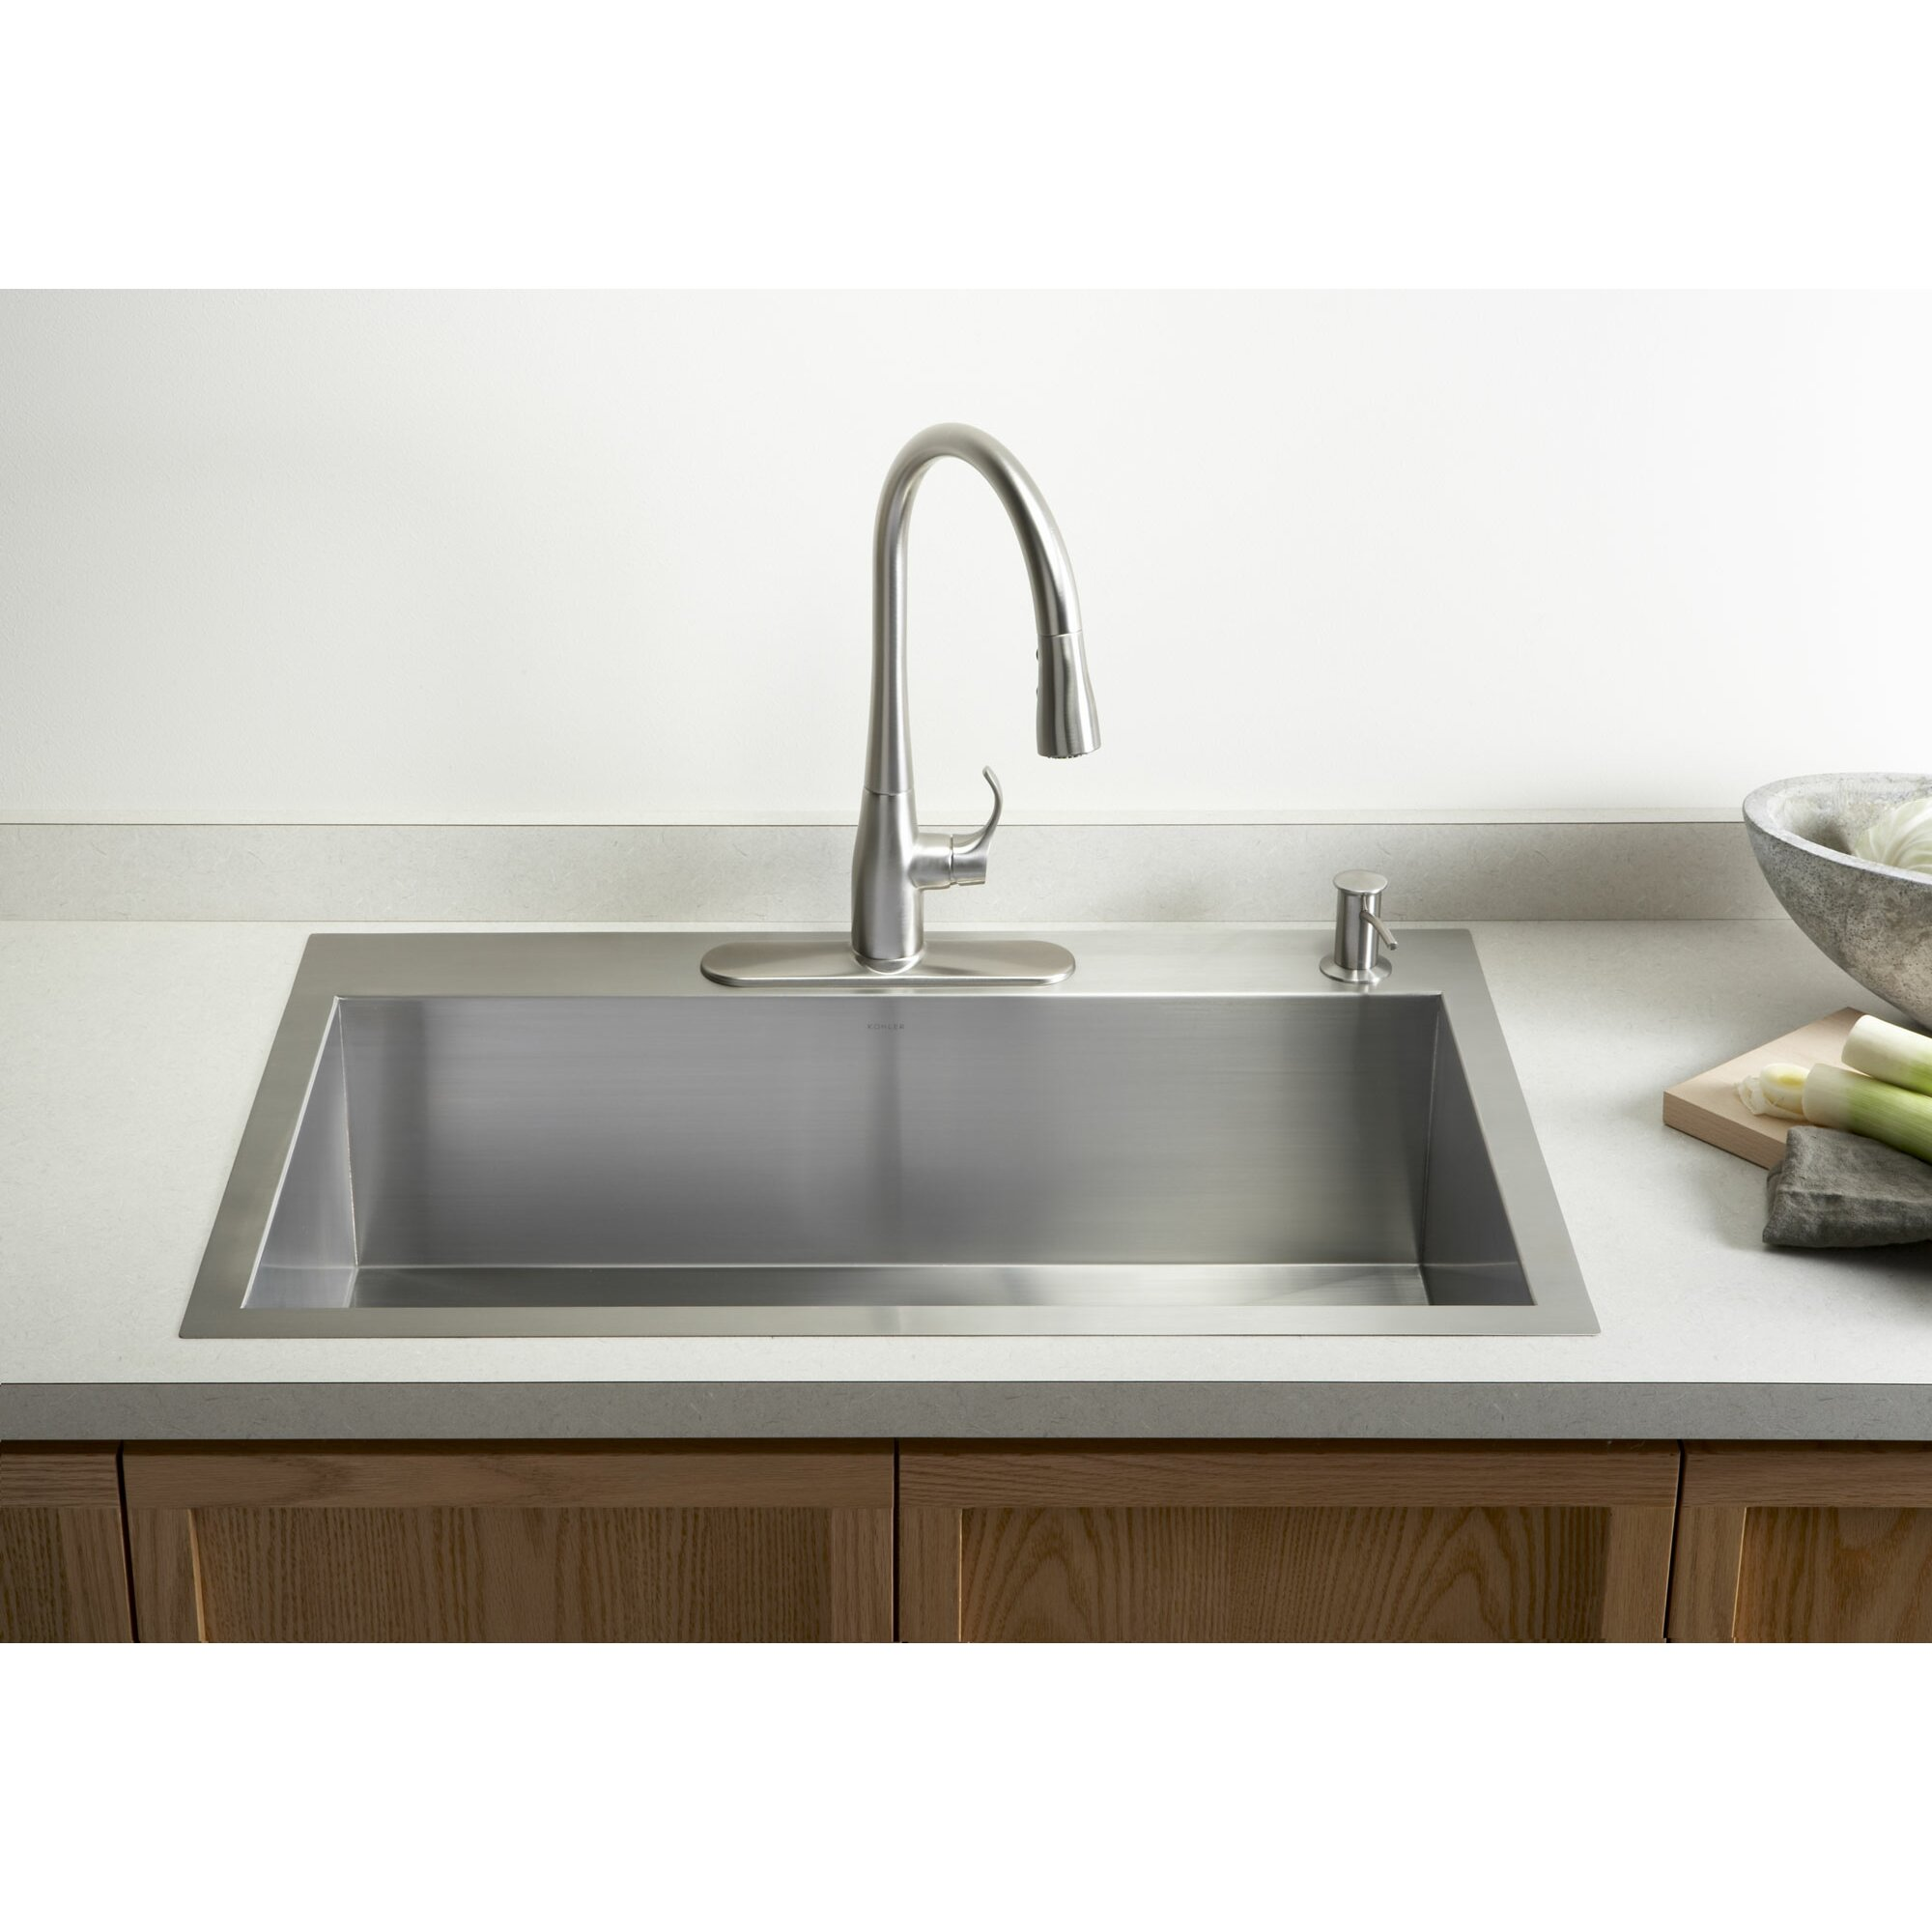 Kohler vault 33 x 22 x 9 5 16 top mount under mount for Best faucets for kitchen sink